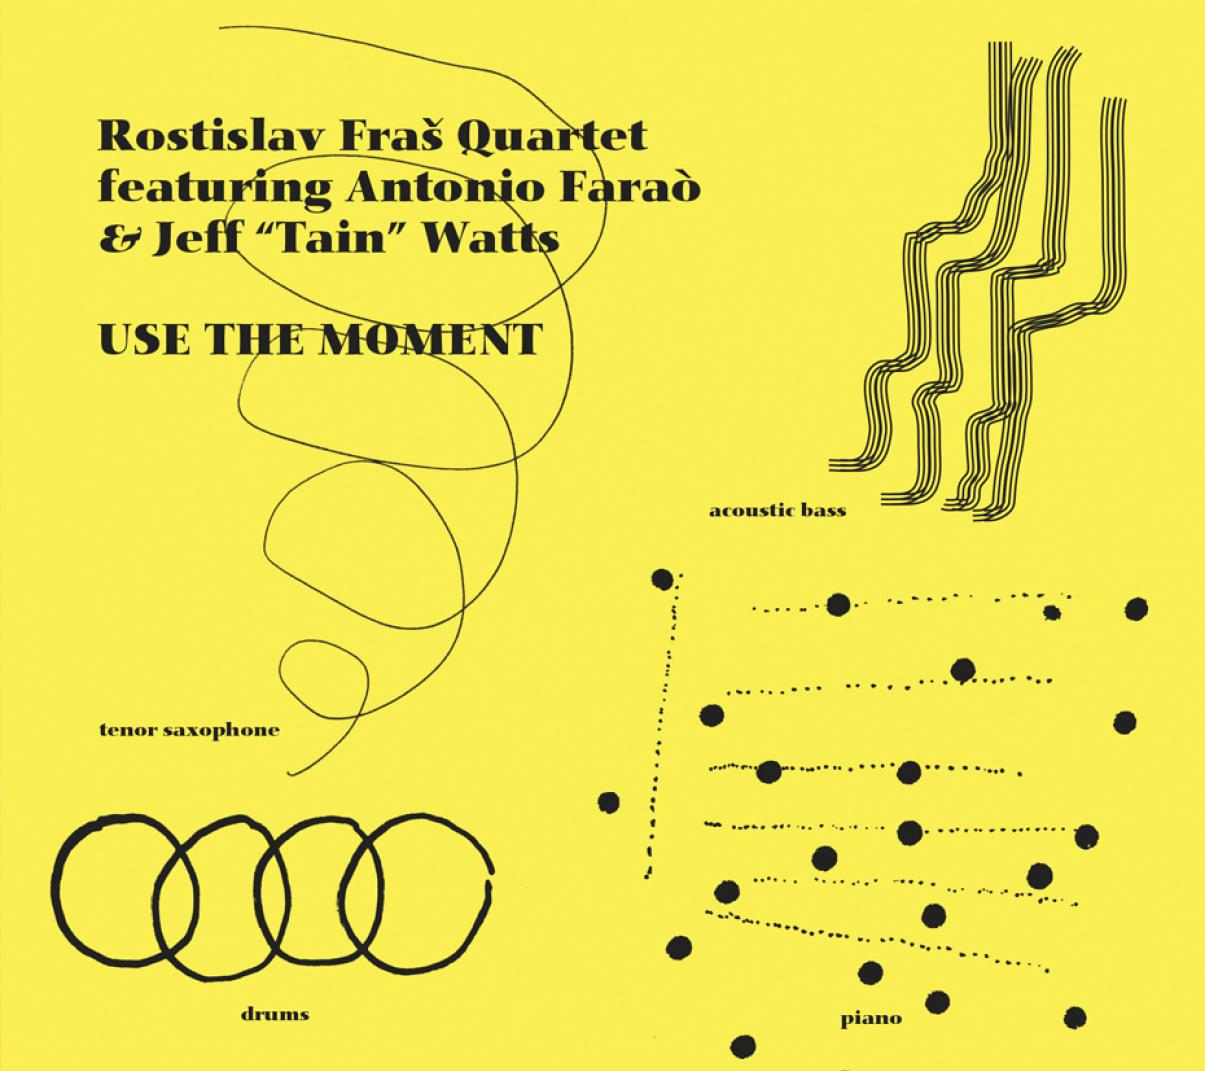 Rostislav Fraš Quartet: Use The Moment